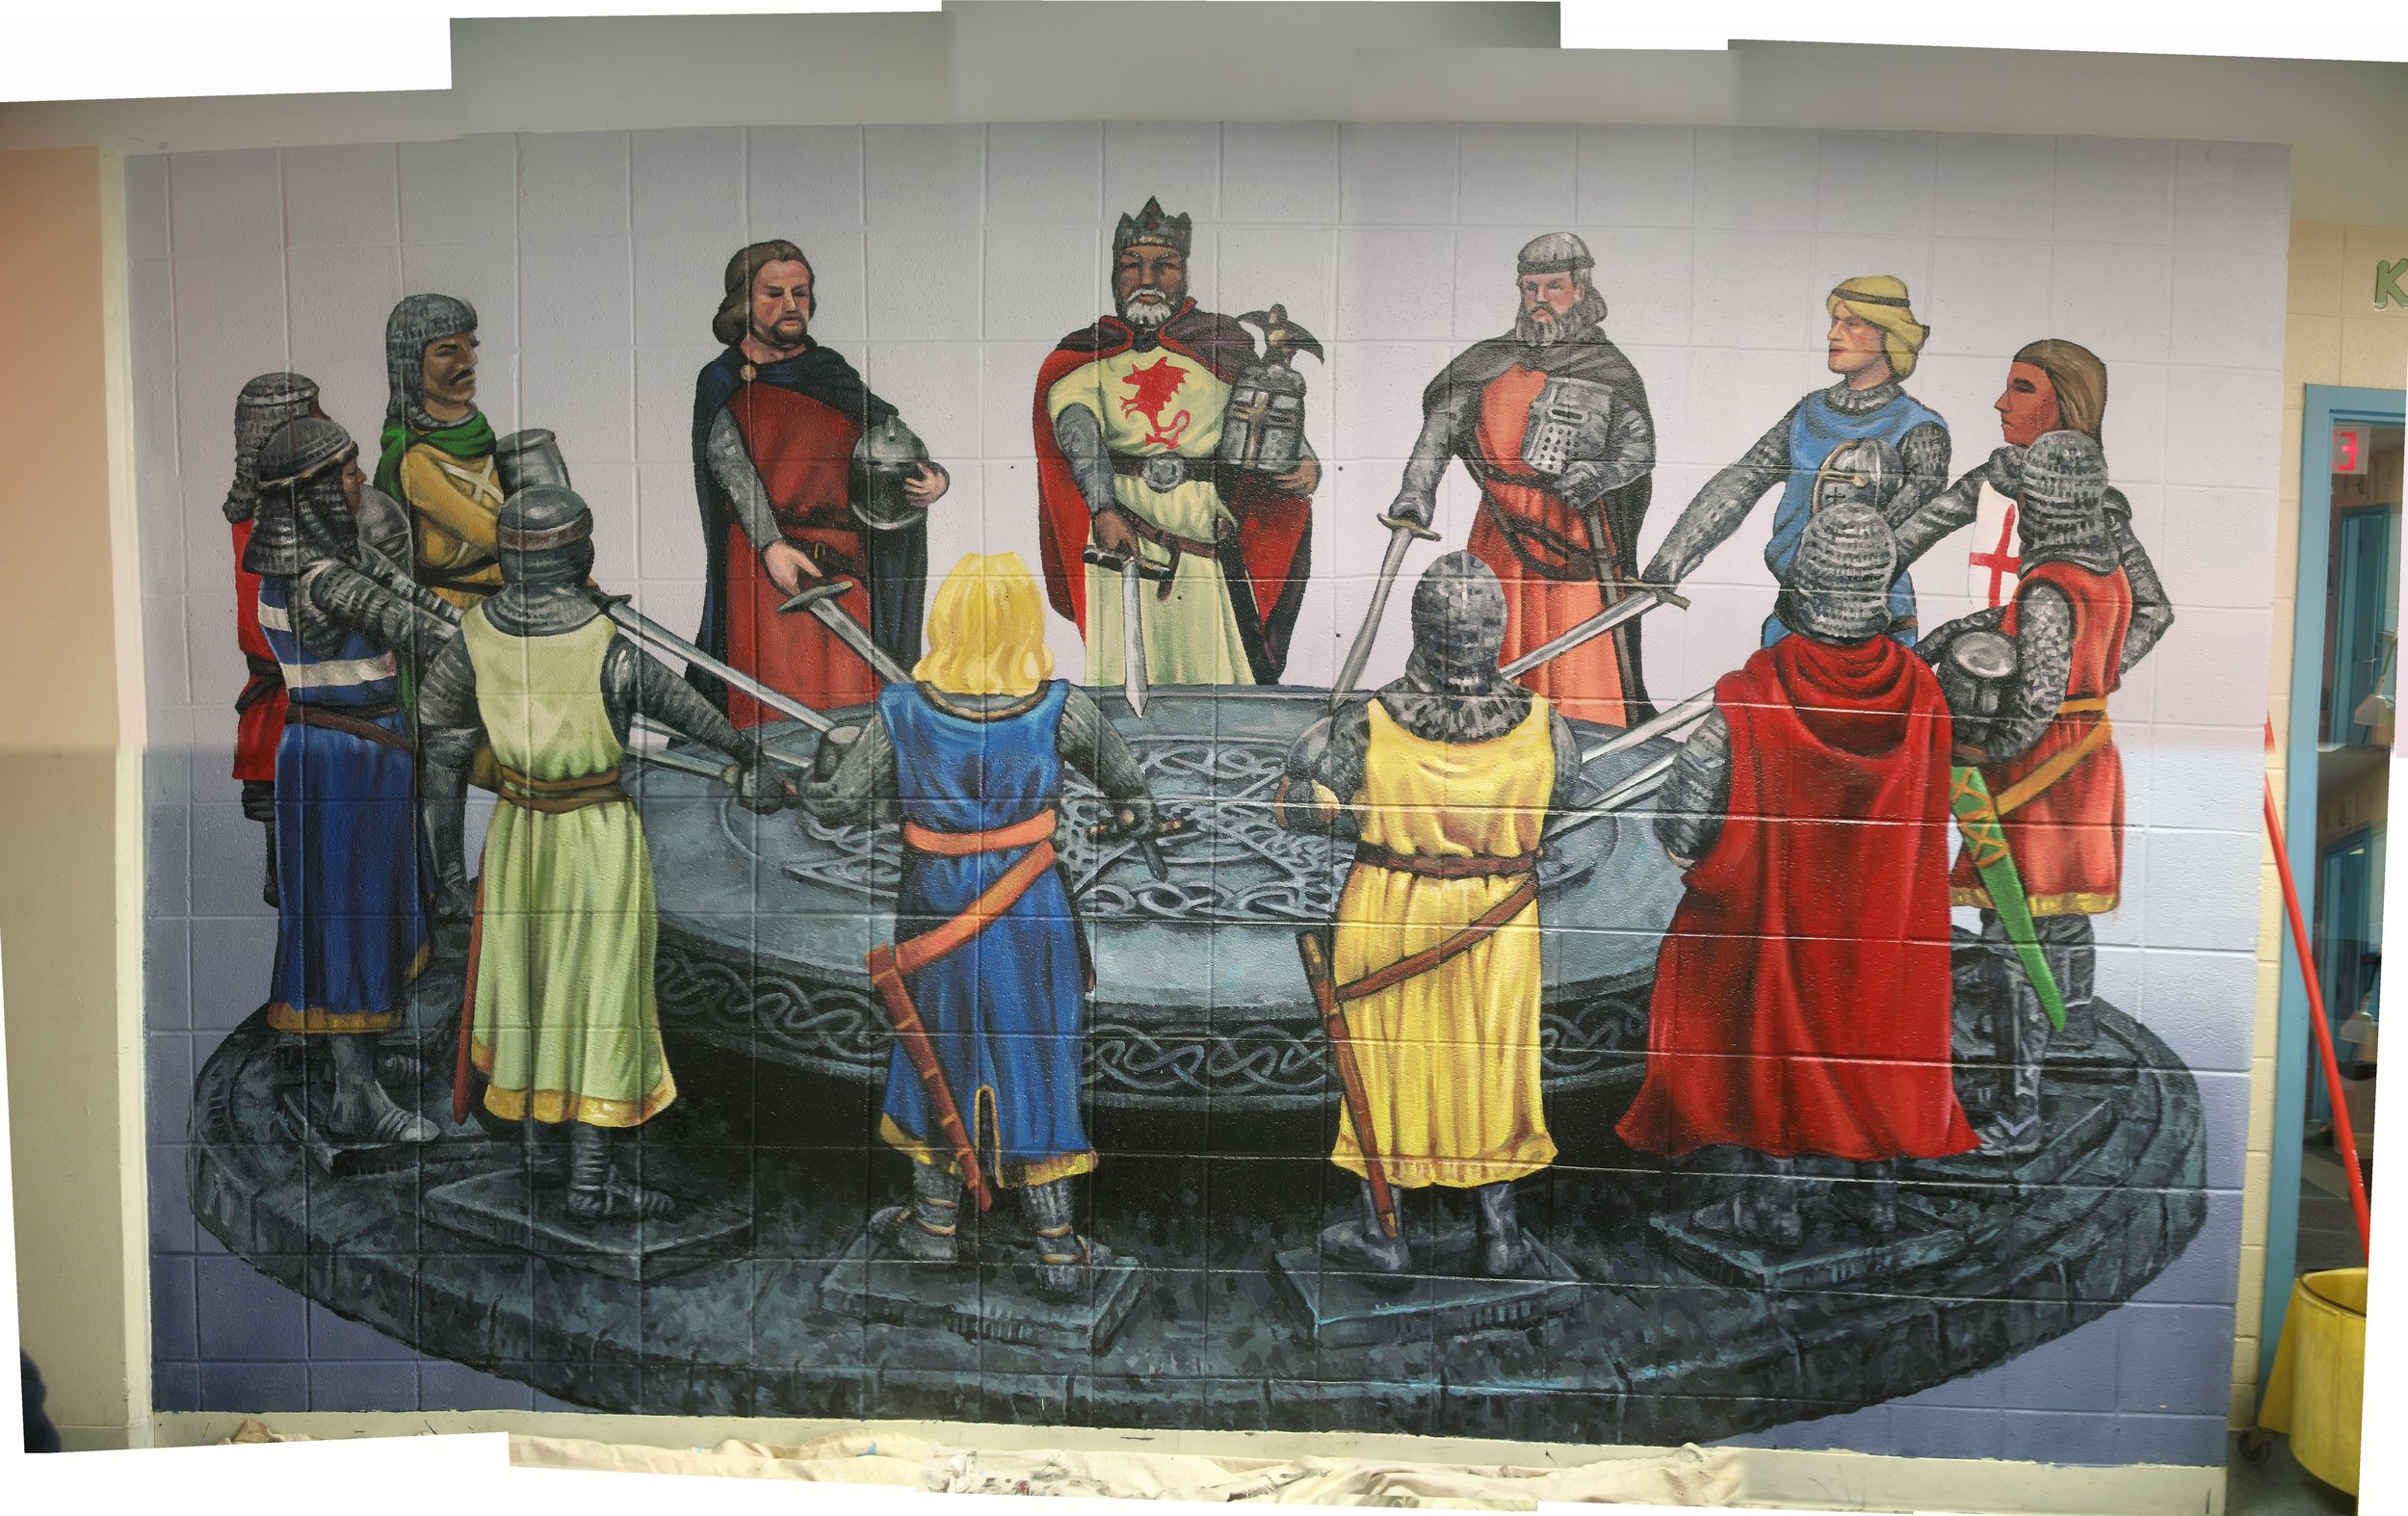 The Knights mural at Rice Child and family Center